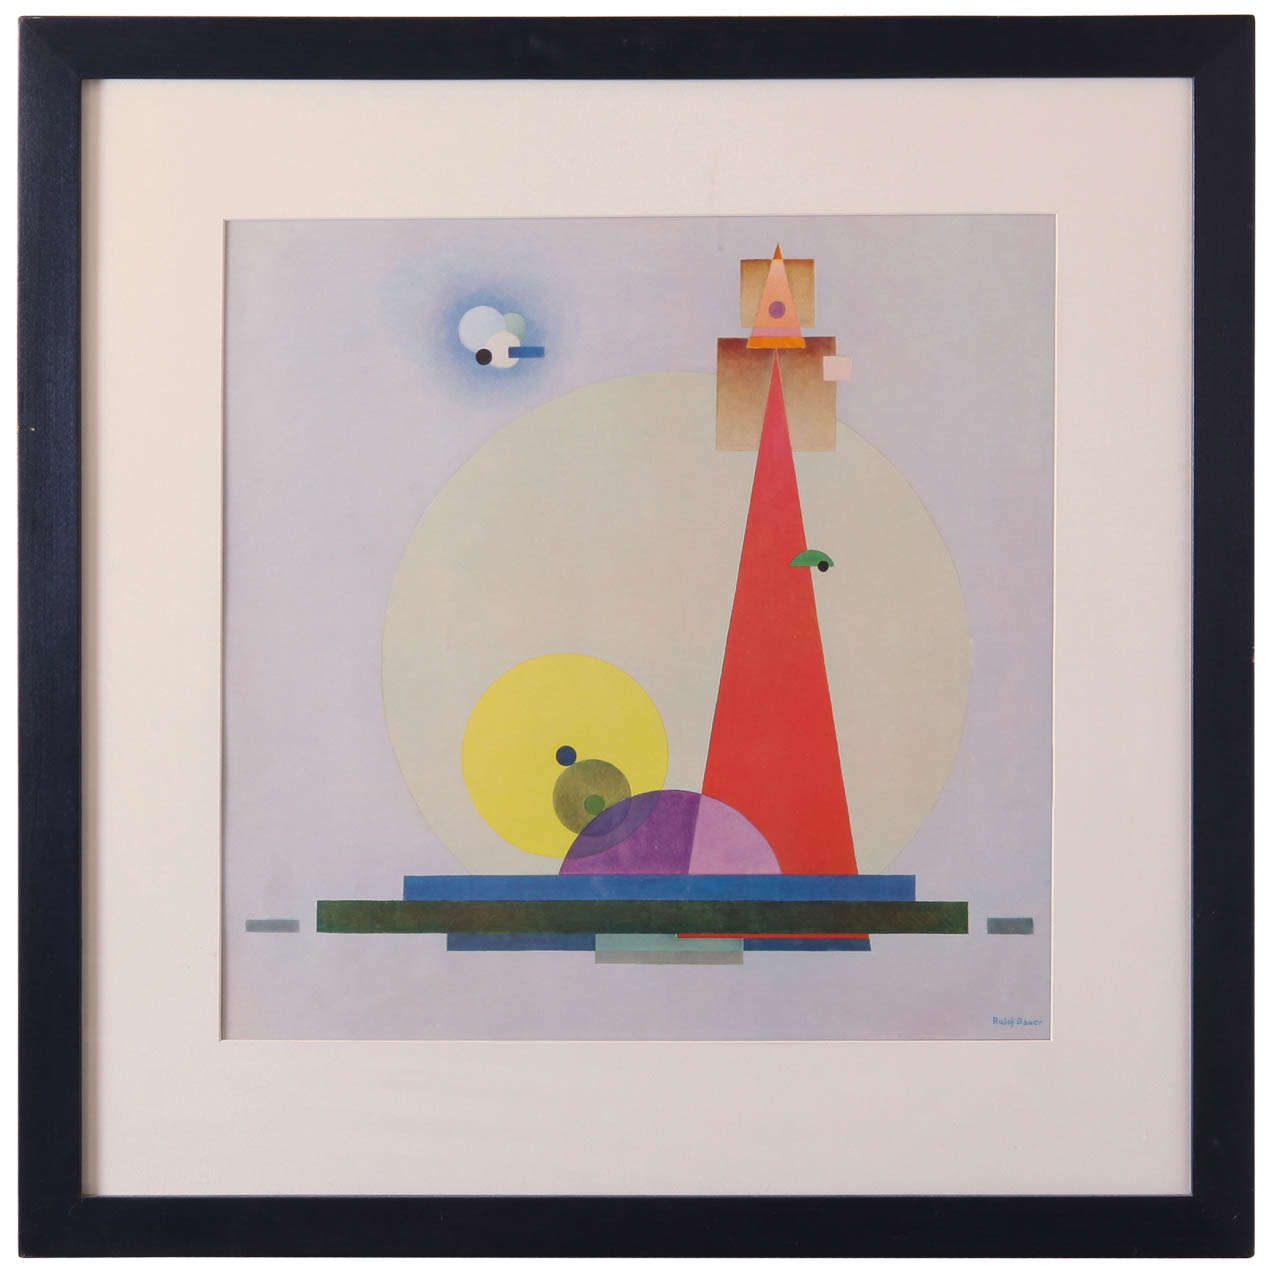 "Rudolf Bauer, ""The Holy One"" Color Litho Guggenheim Print"